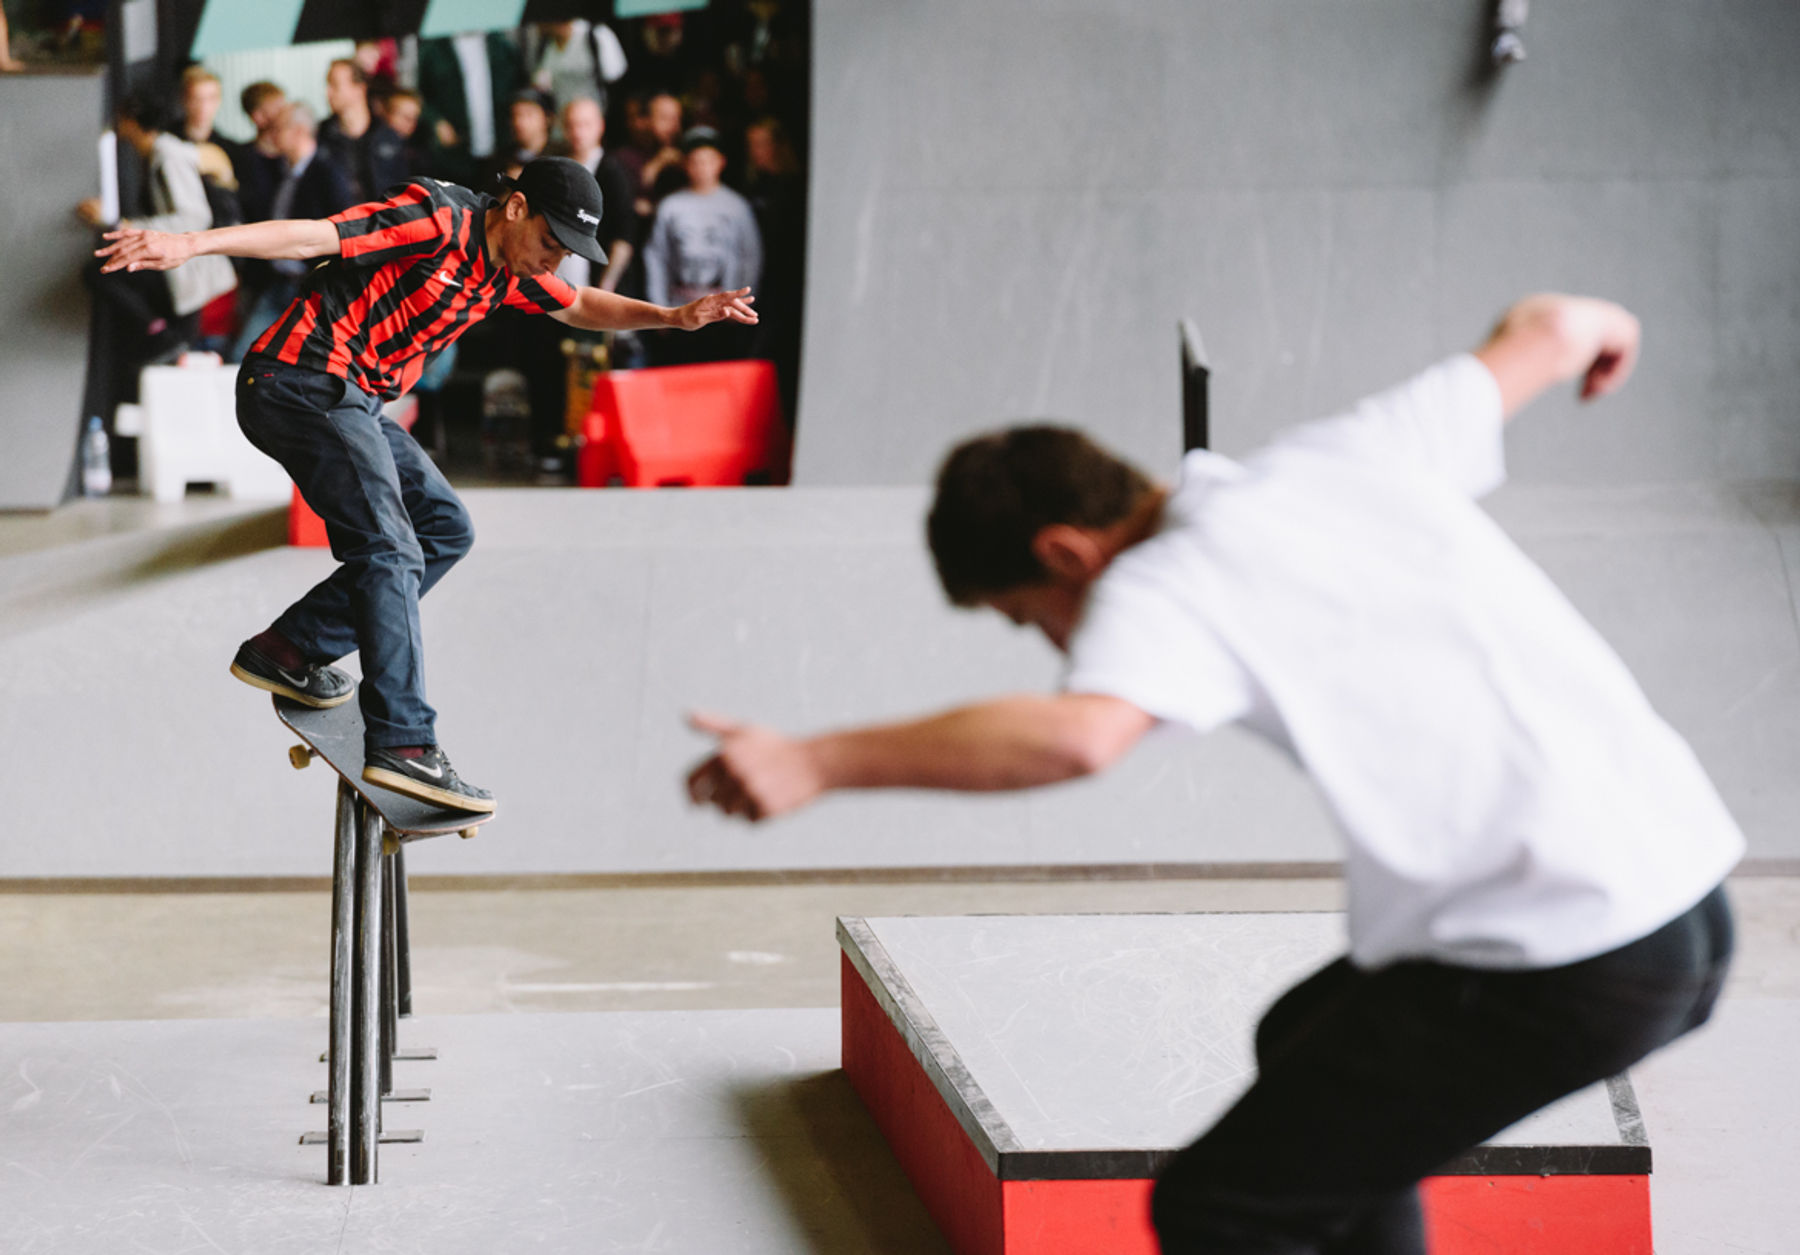 _IHC4651e-Kyron-Davis-Bs-Smith-Nike-SB-London-AM-Day-1-June-2015-Photographer-Maksim-Kalanep